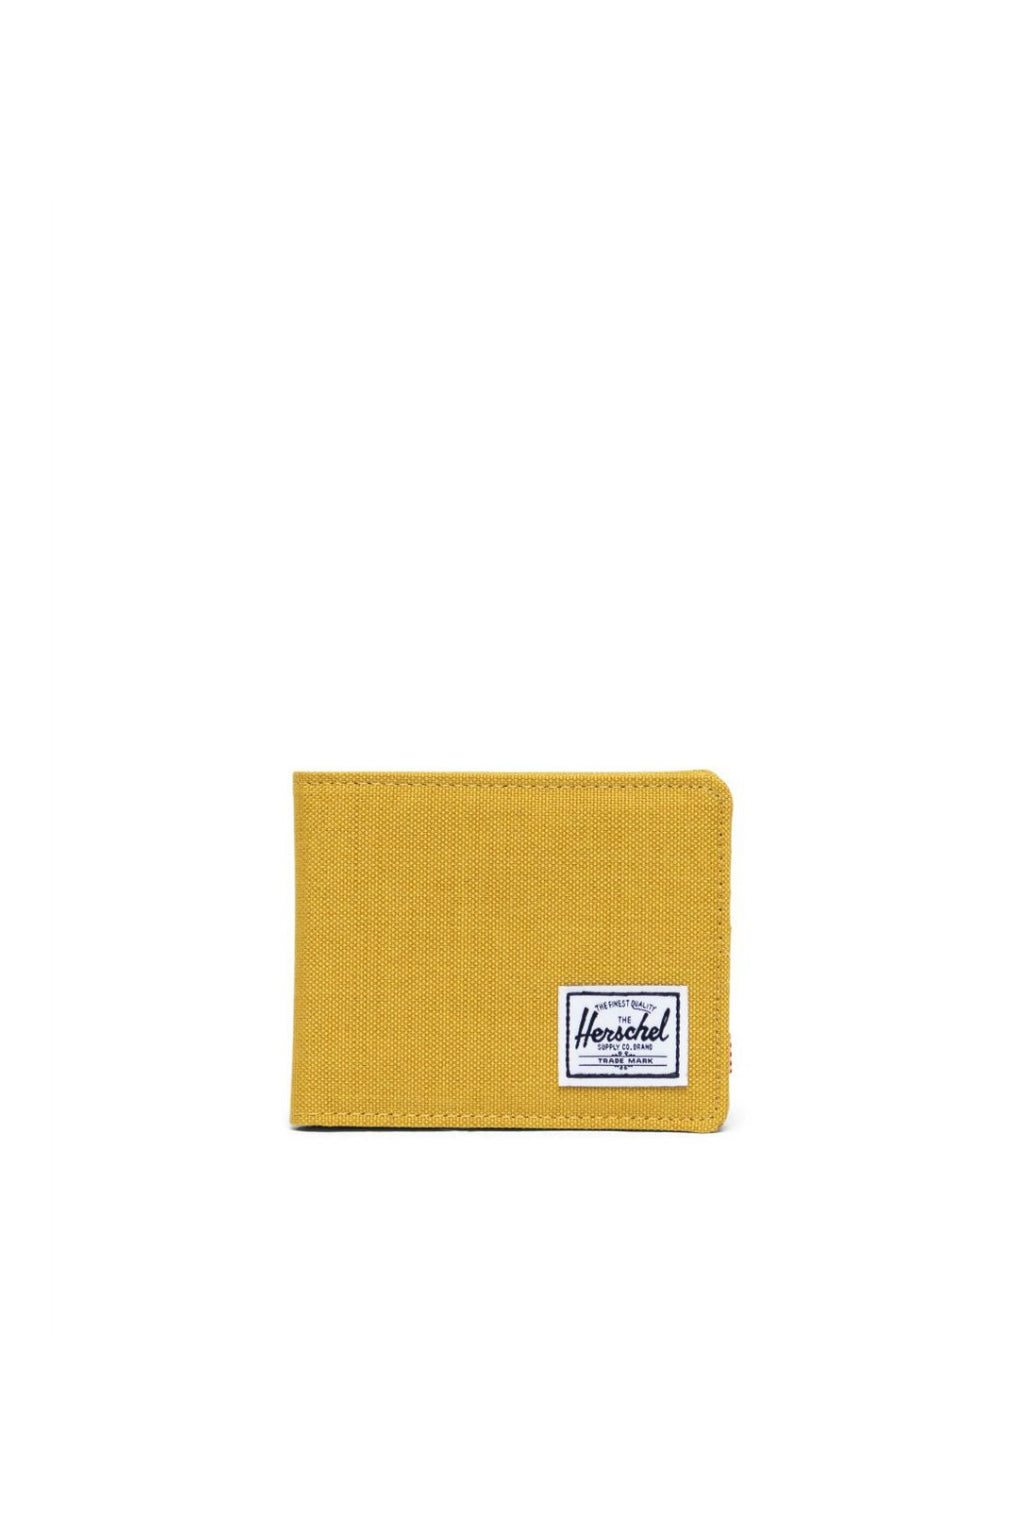 Herschel Supply Co. Roy Wallet - Arrowwood